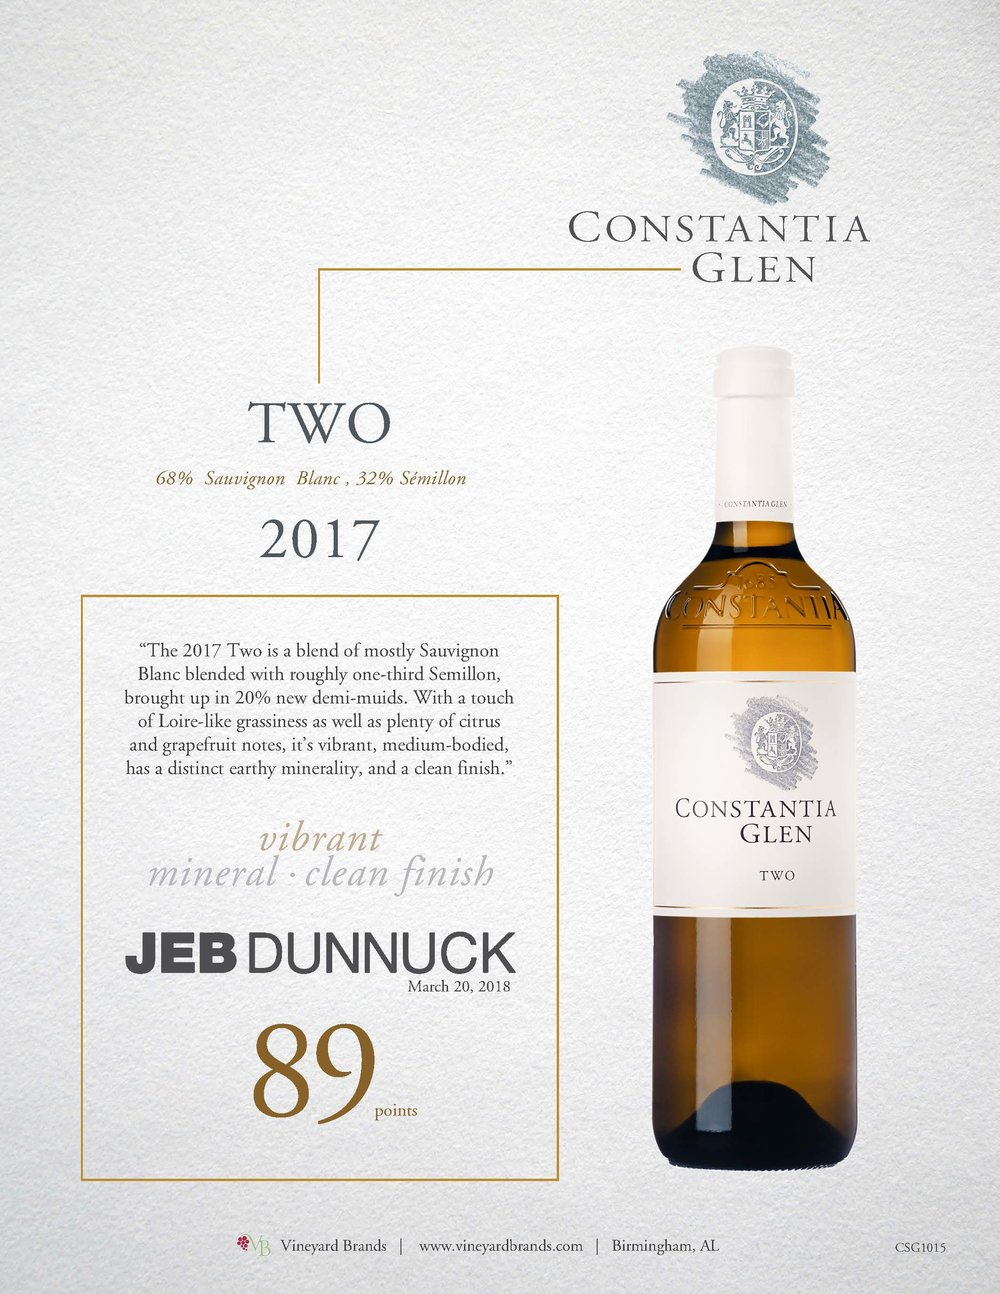 Constantia Glen TWO.jpg